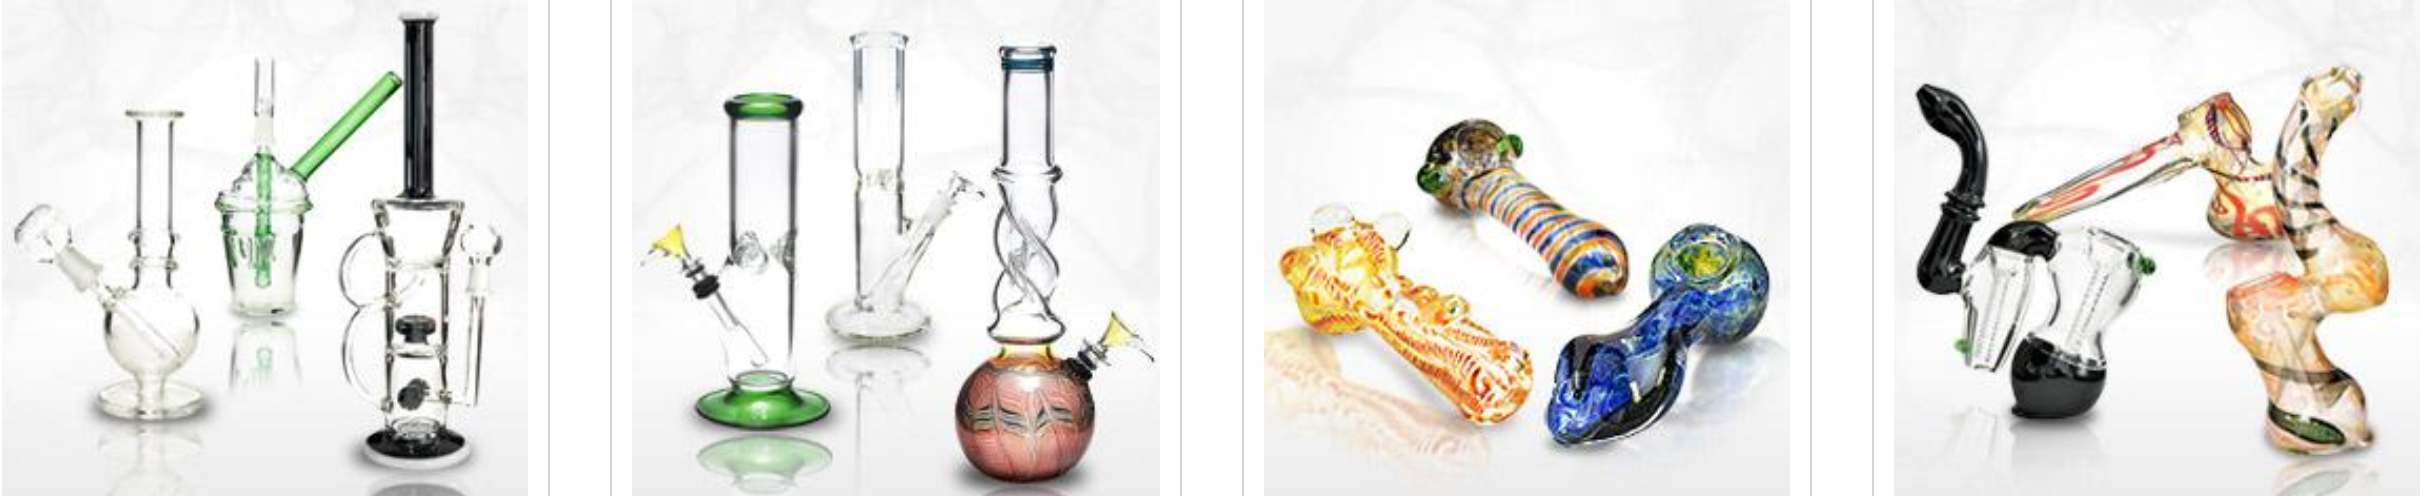 water pipes and bongs, Funky water pipes ,Rick and morty bongs and other bongs.